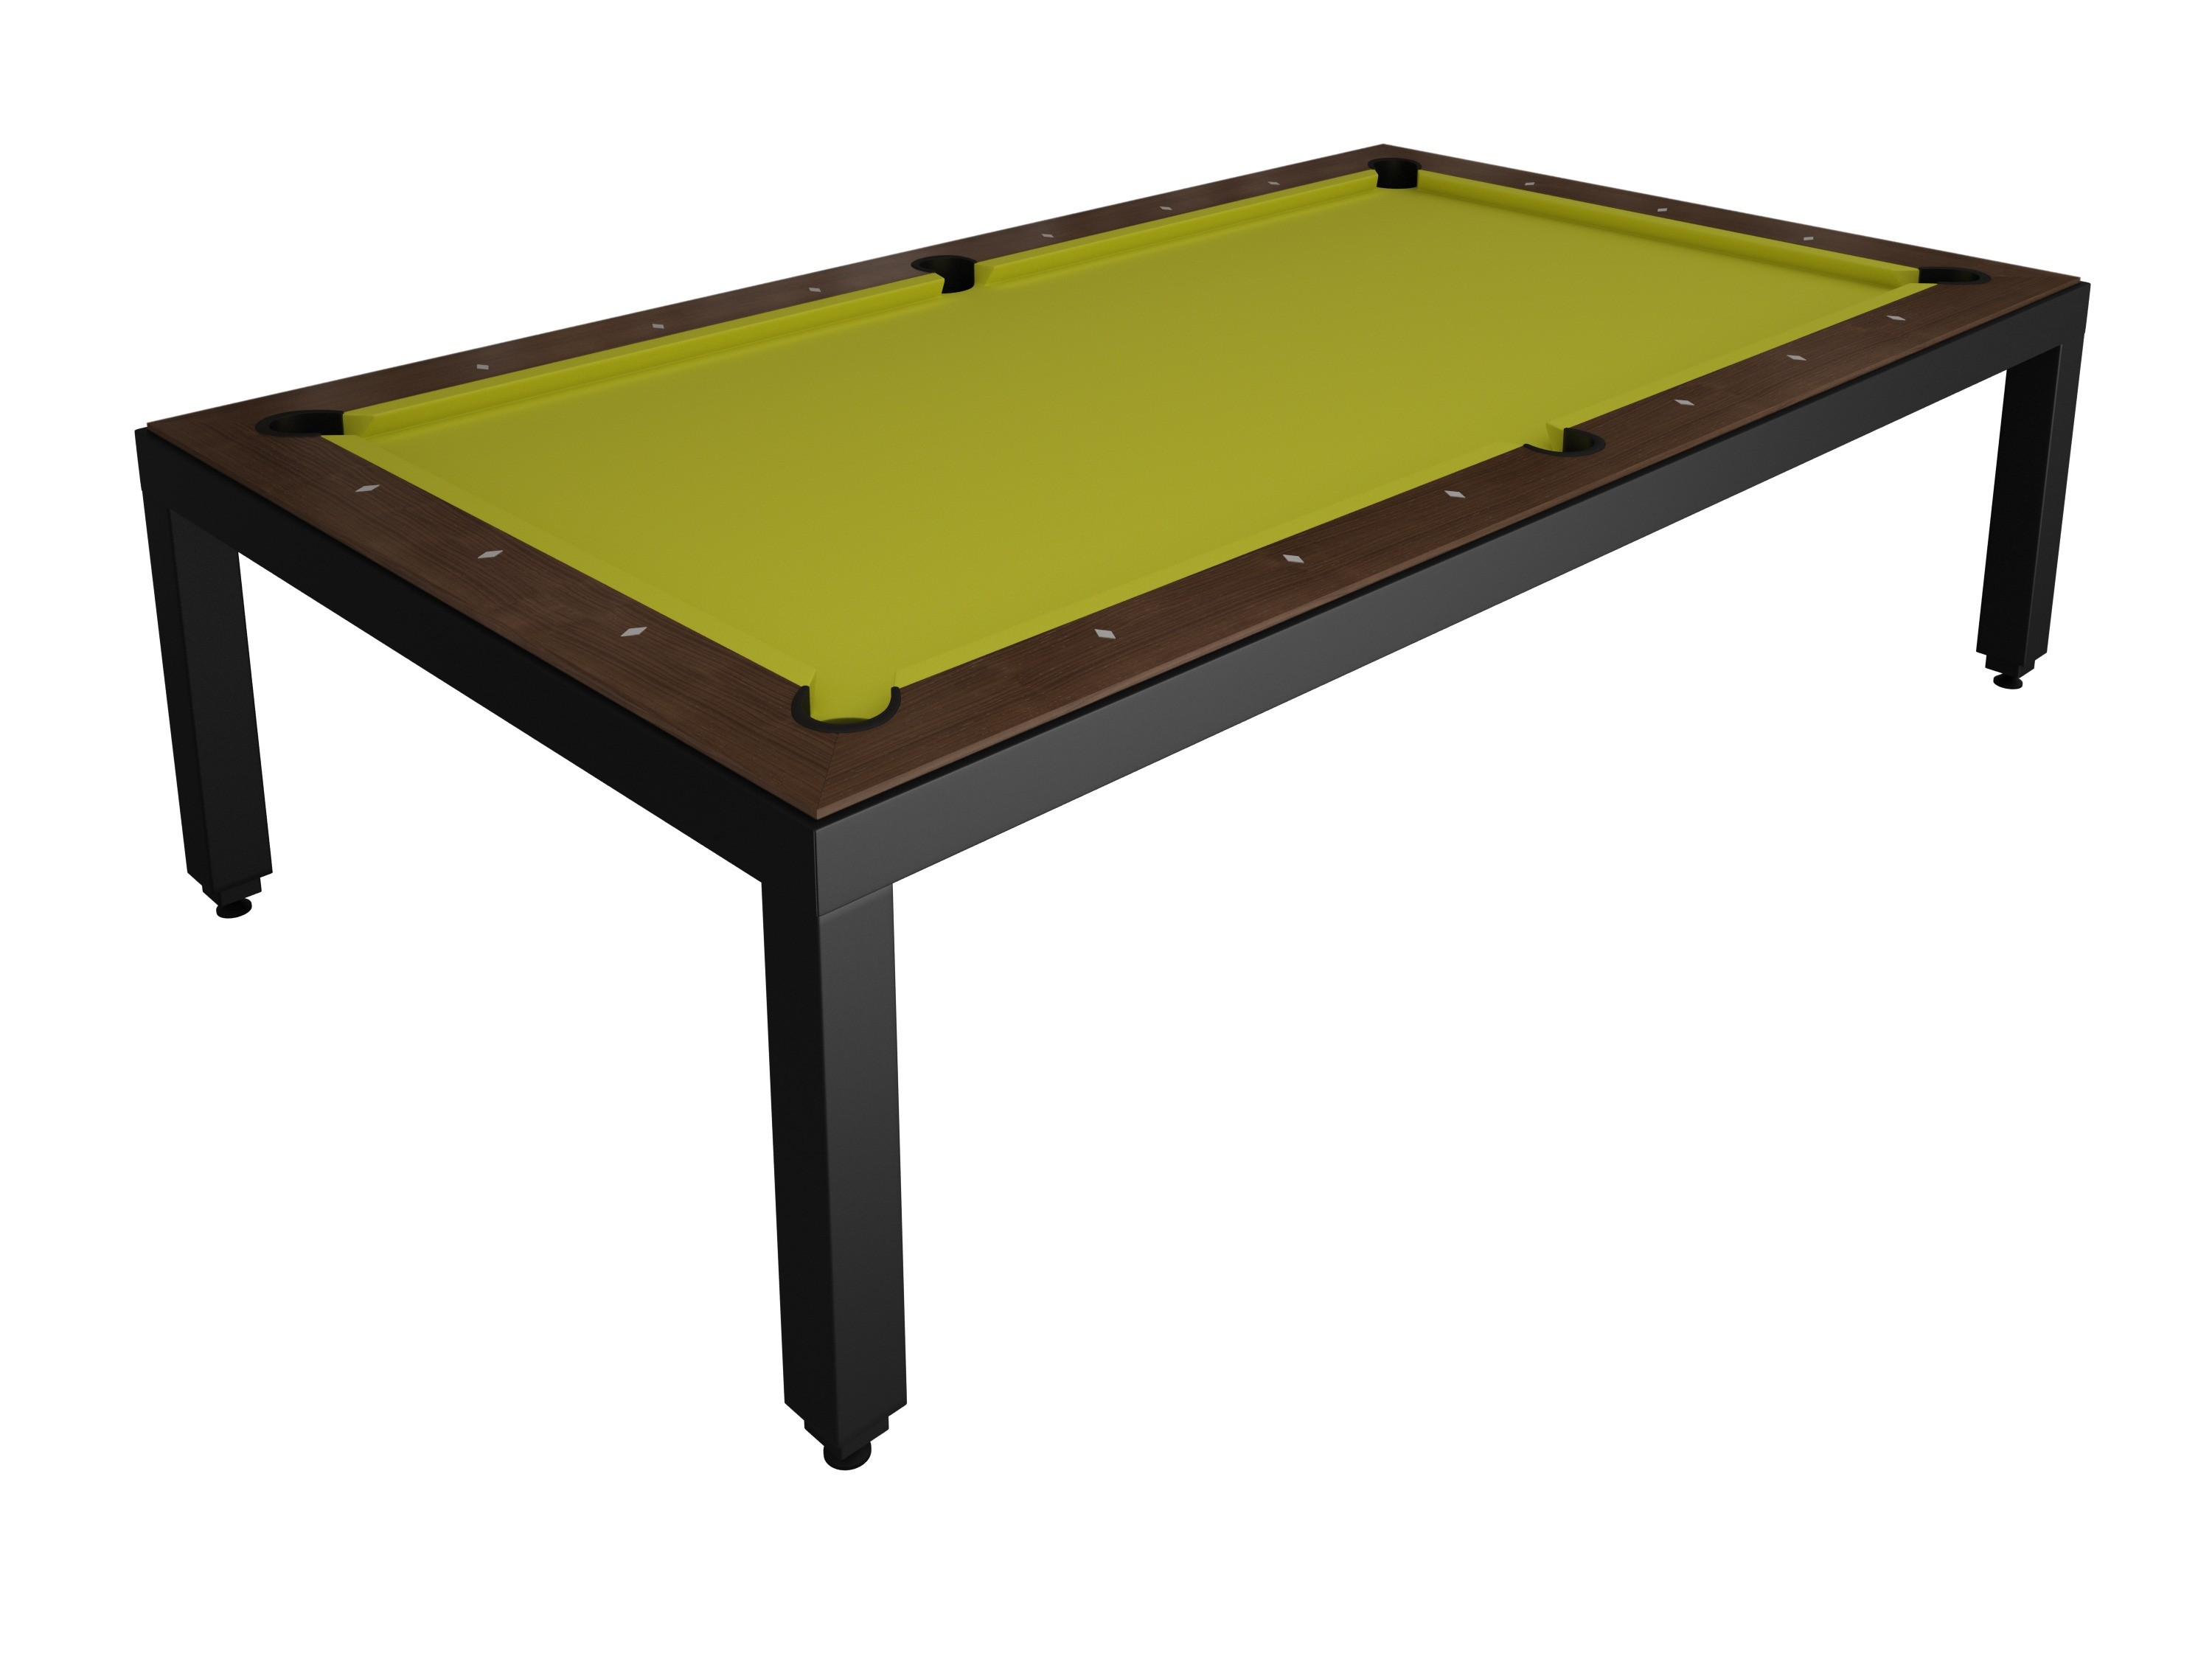 Table Diner Billard Fusion Table Laquee Noire 7p Tables D Ner Billard Tables De Billard